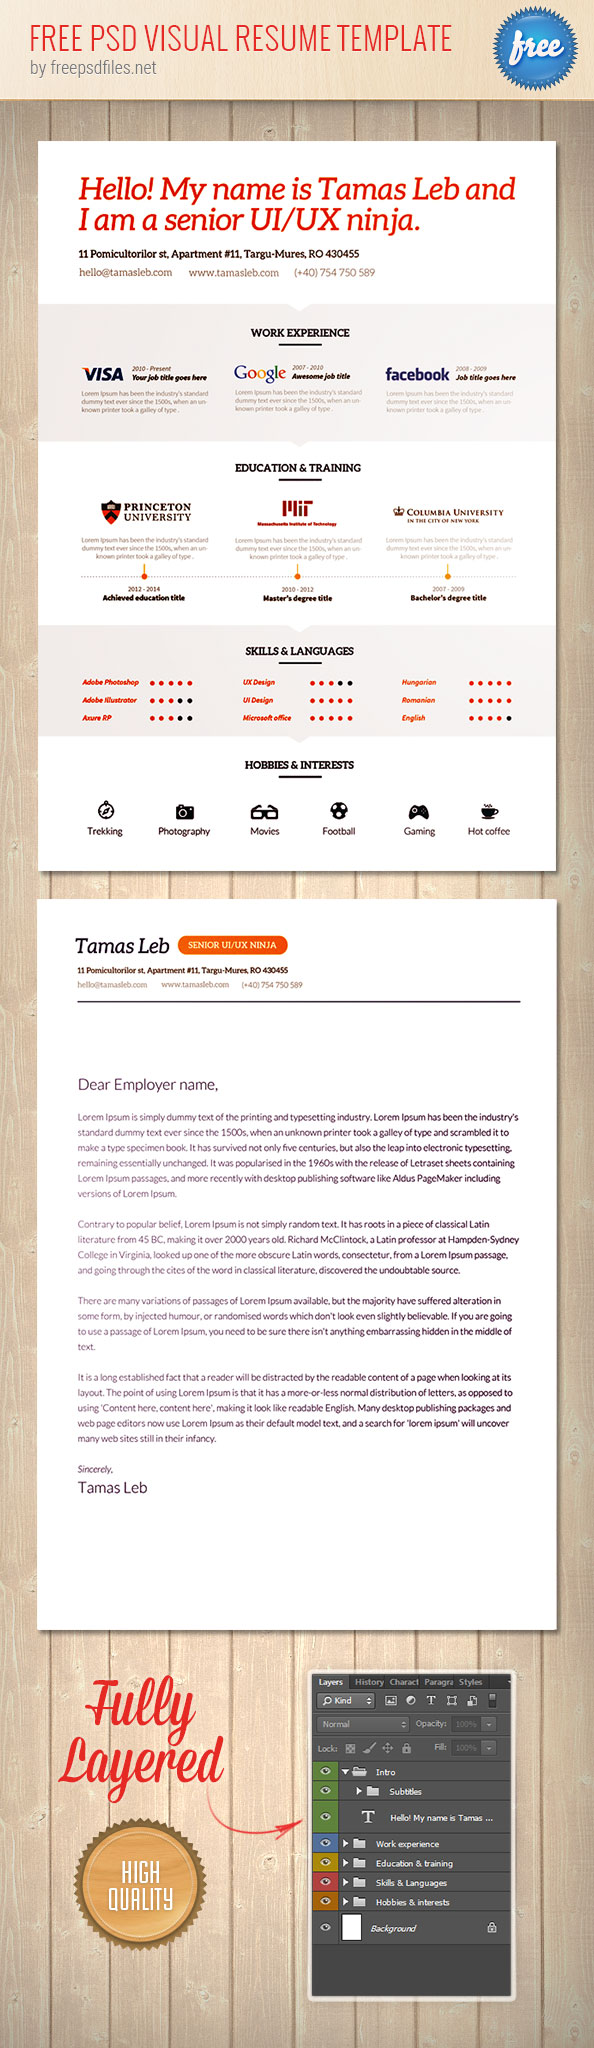 Free PSD Visual Resume Template - Free PSD Files